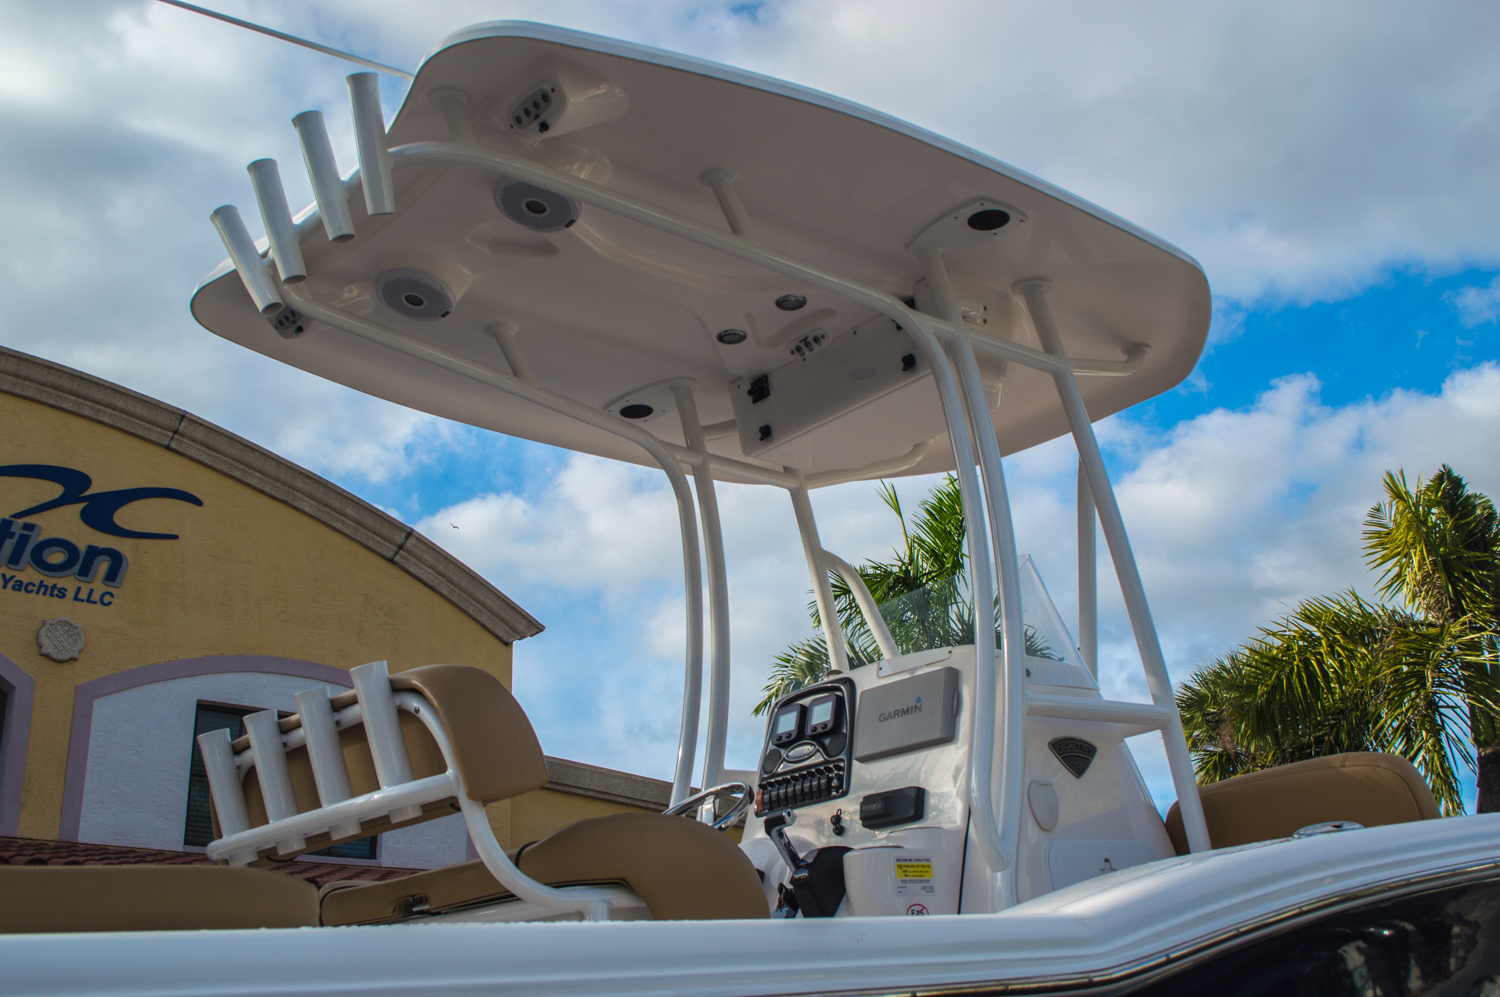 Thumbnail 7 for Used 2015 Tidewater 230 LXF Center Console boat for sale in West Palm Beach, FL